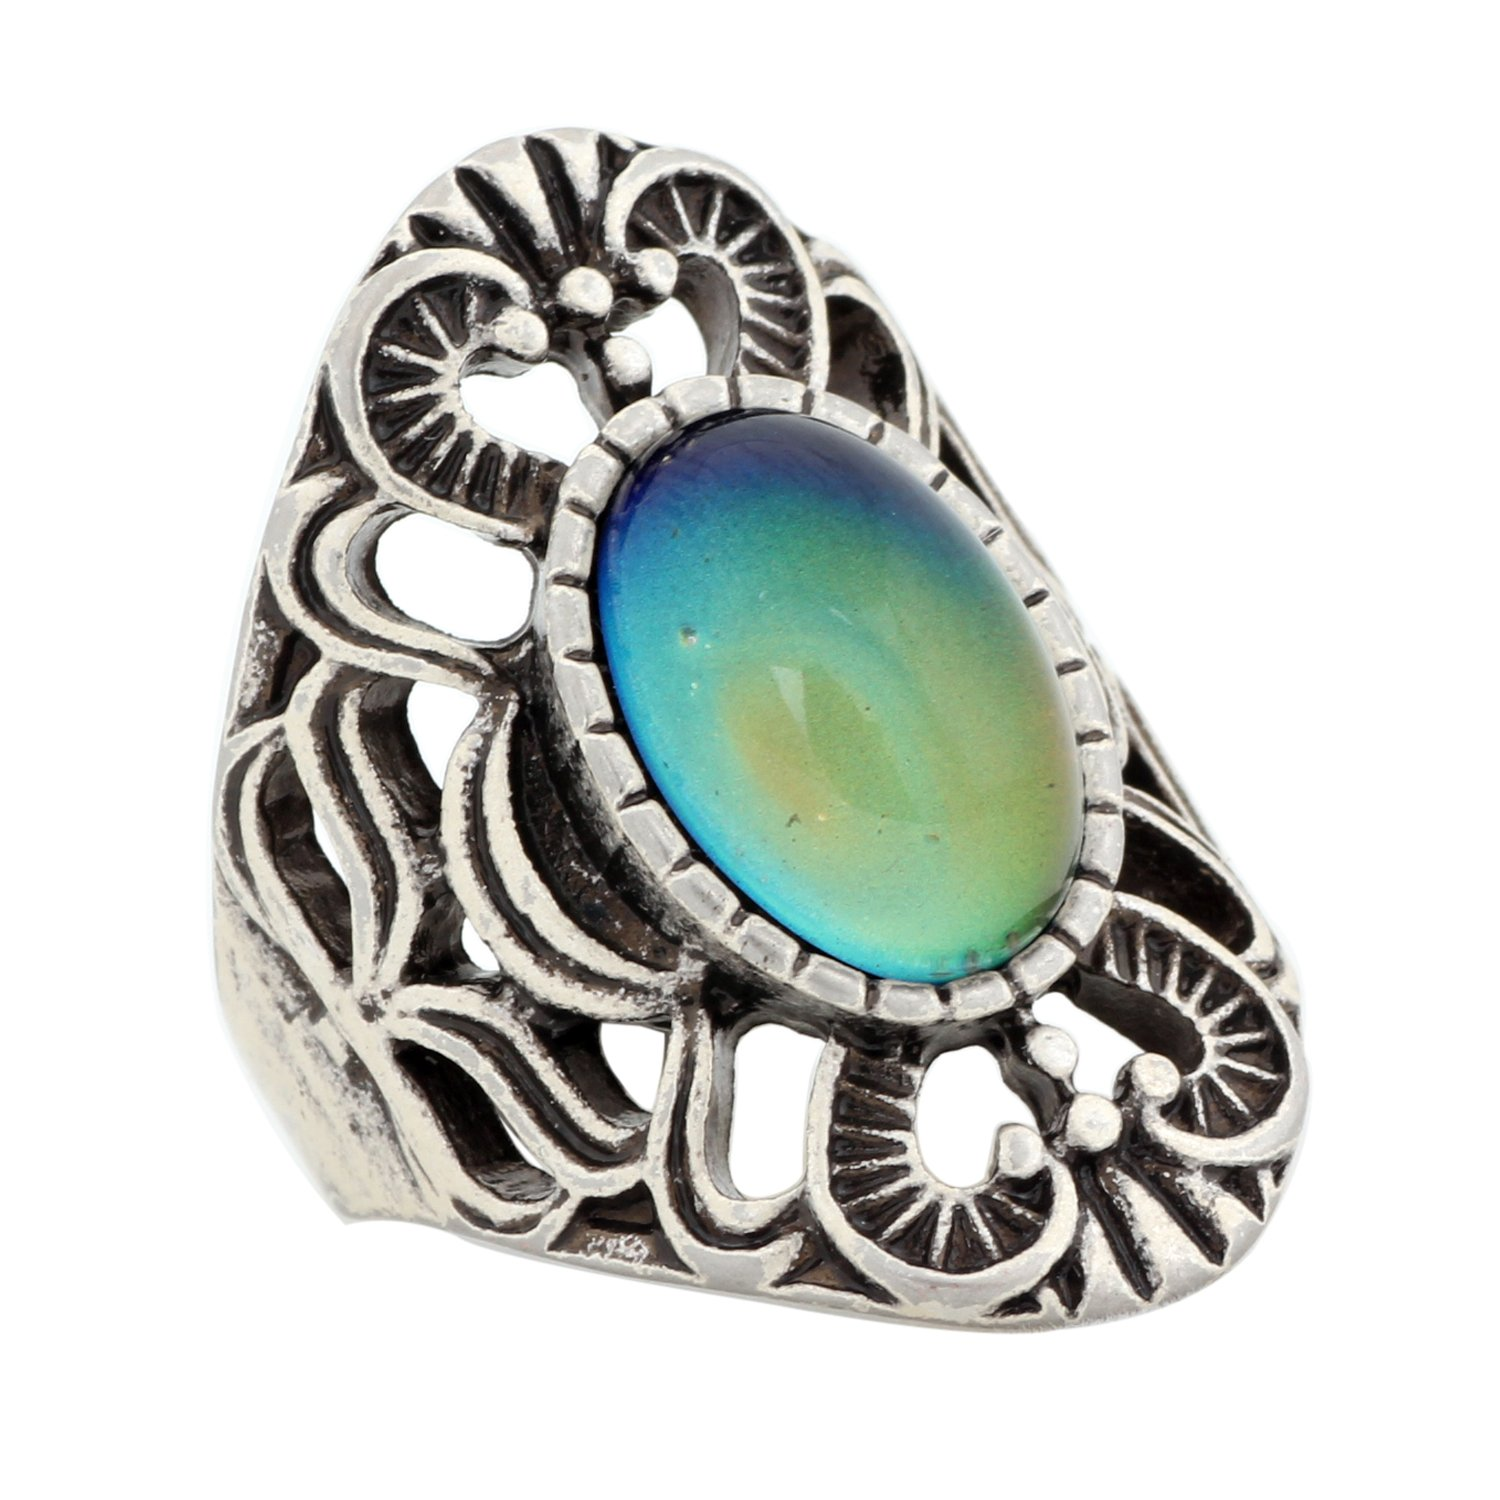 Mojo Hollowed Pattern Antique Sterling Silver Plating Oval Stone Color Change Mood Ring MJ-RS013